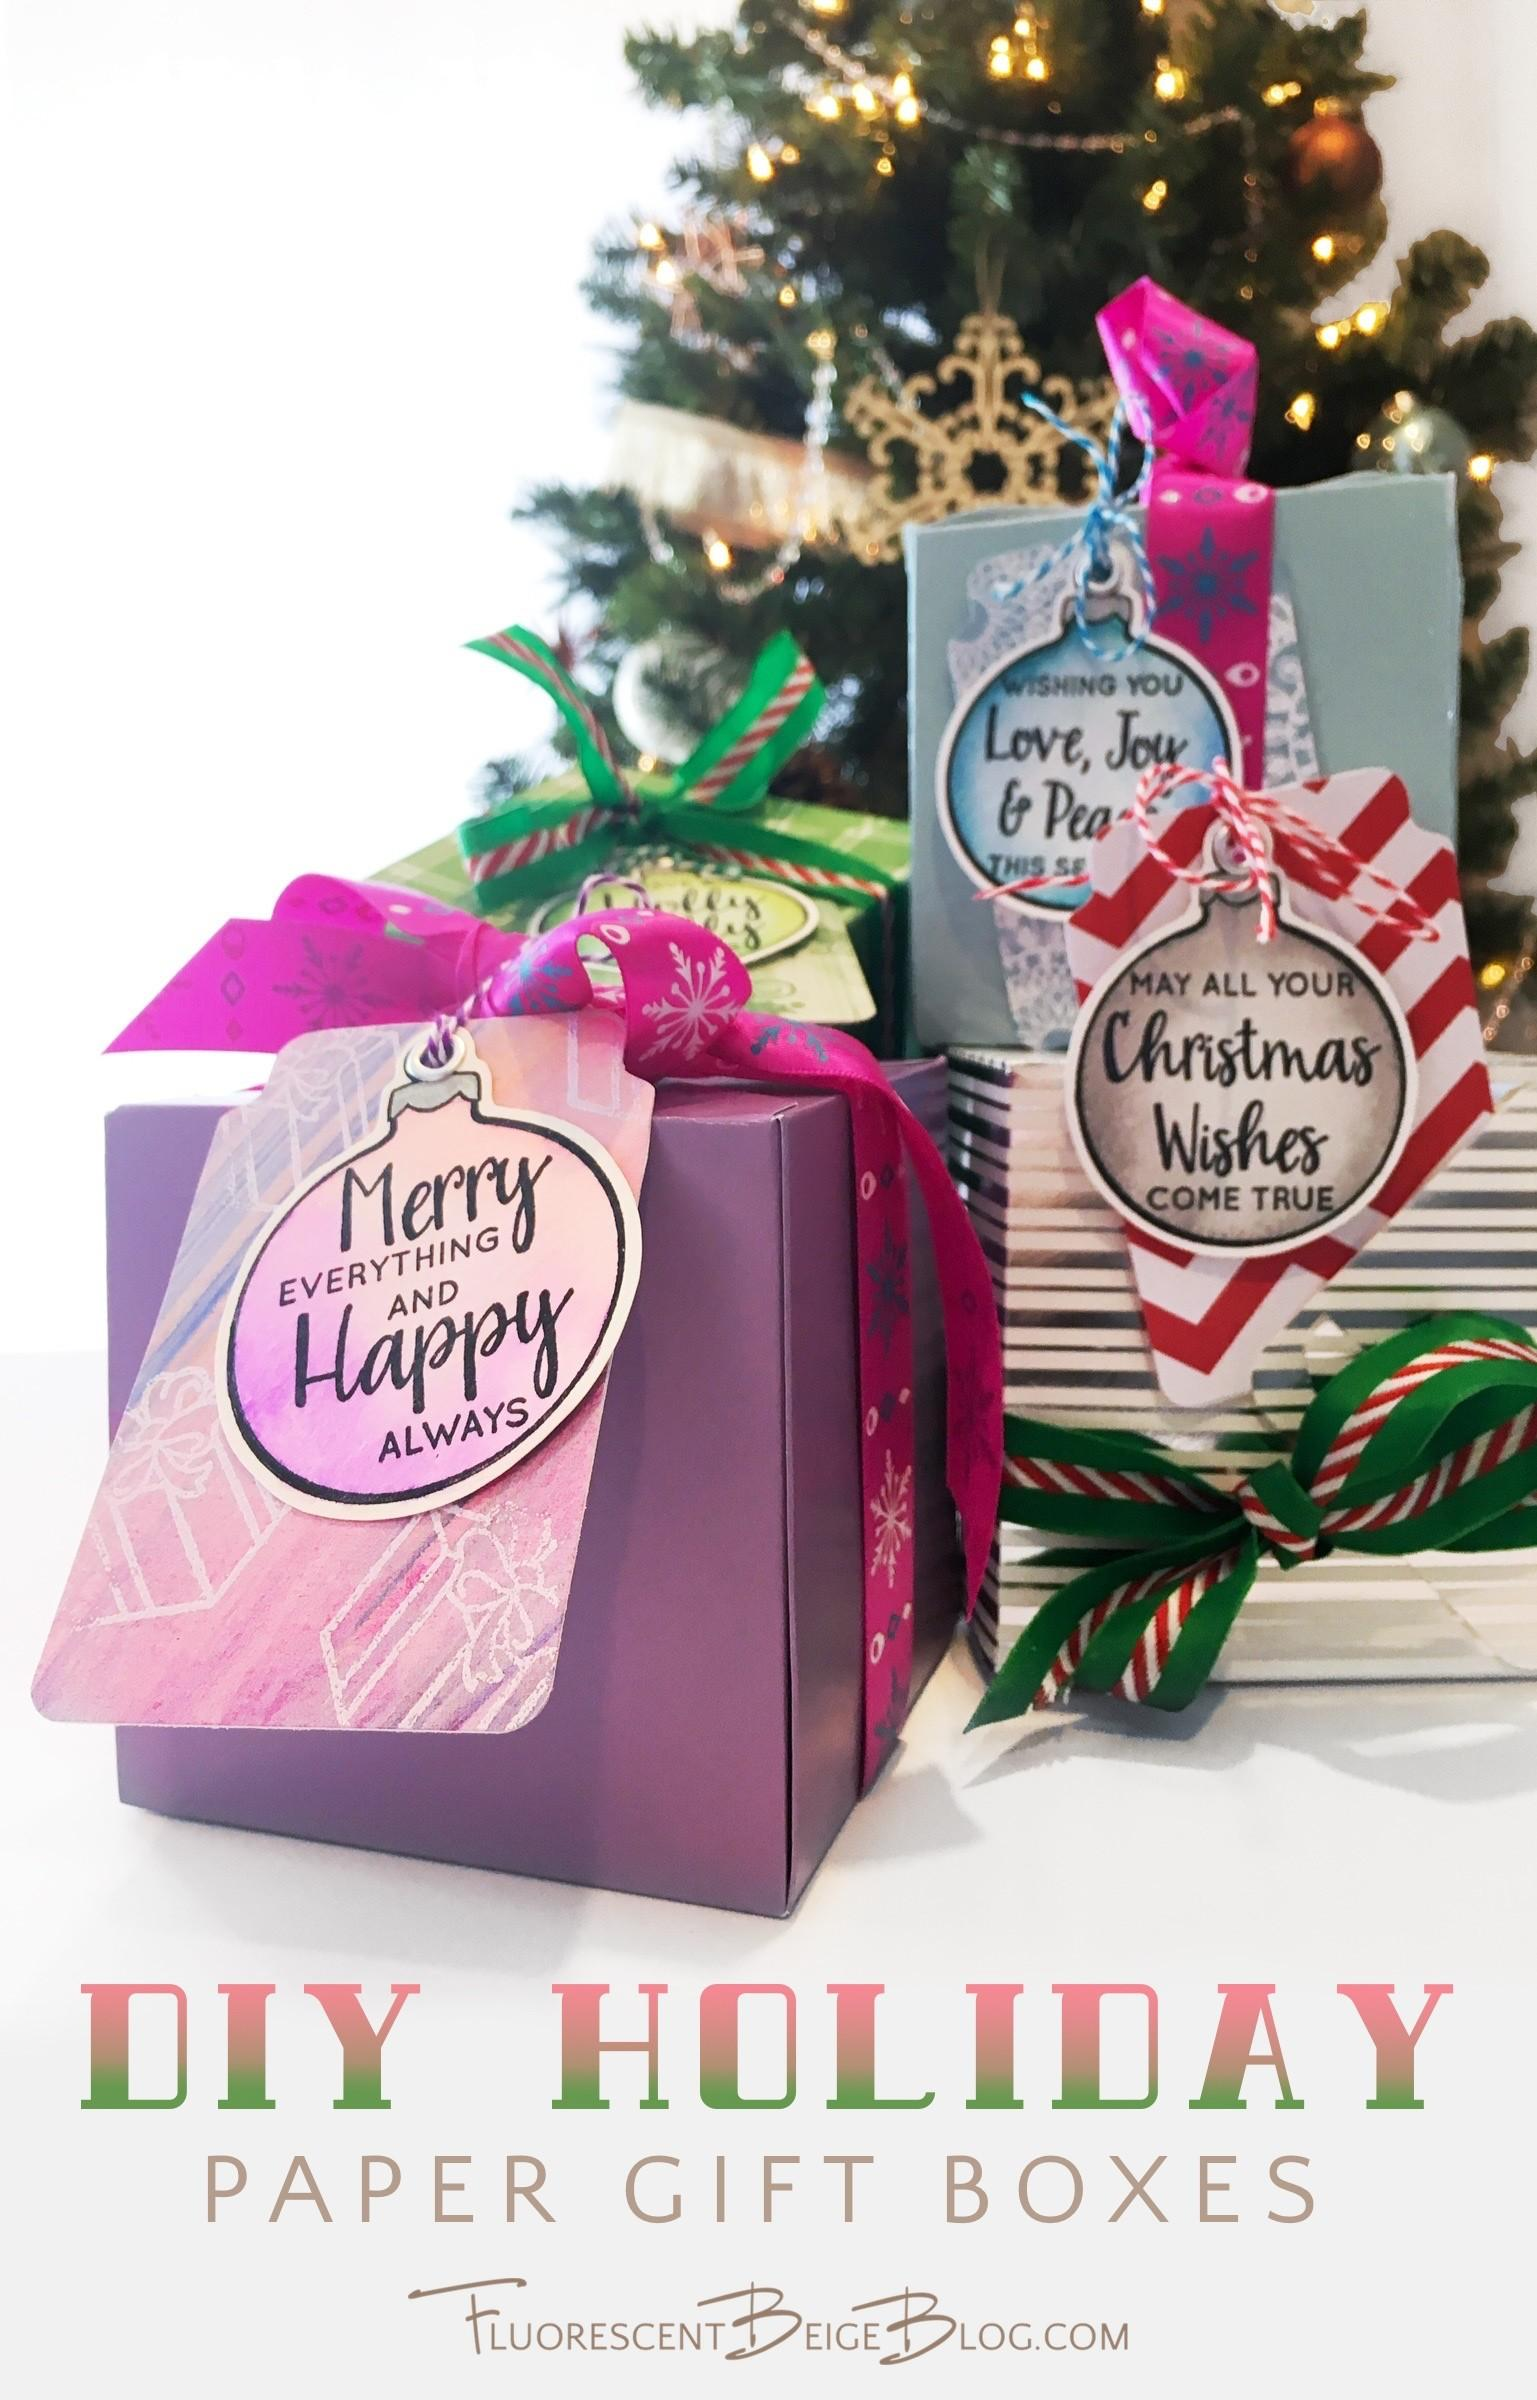 Diy Holiday Paper Gift Boxes Fluorescent Beige